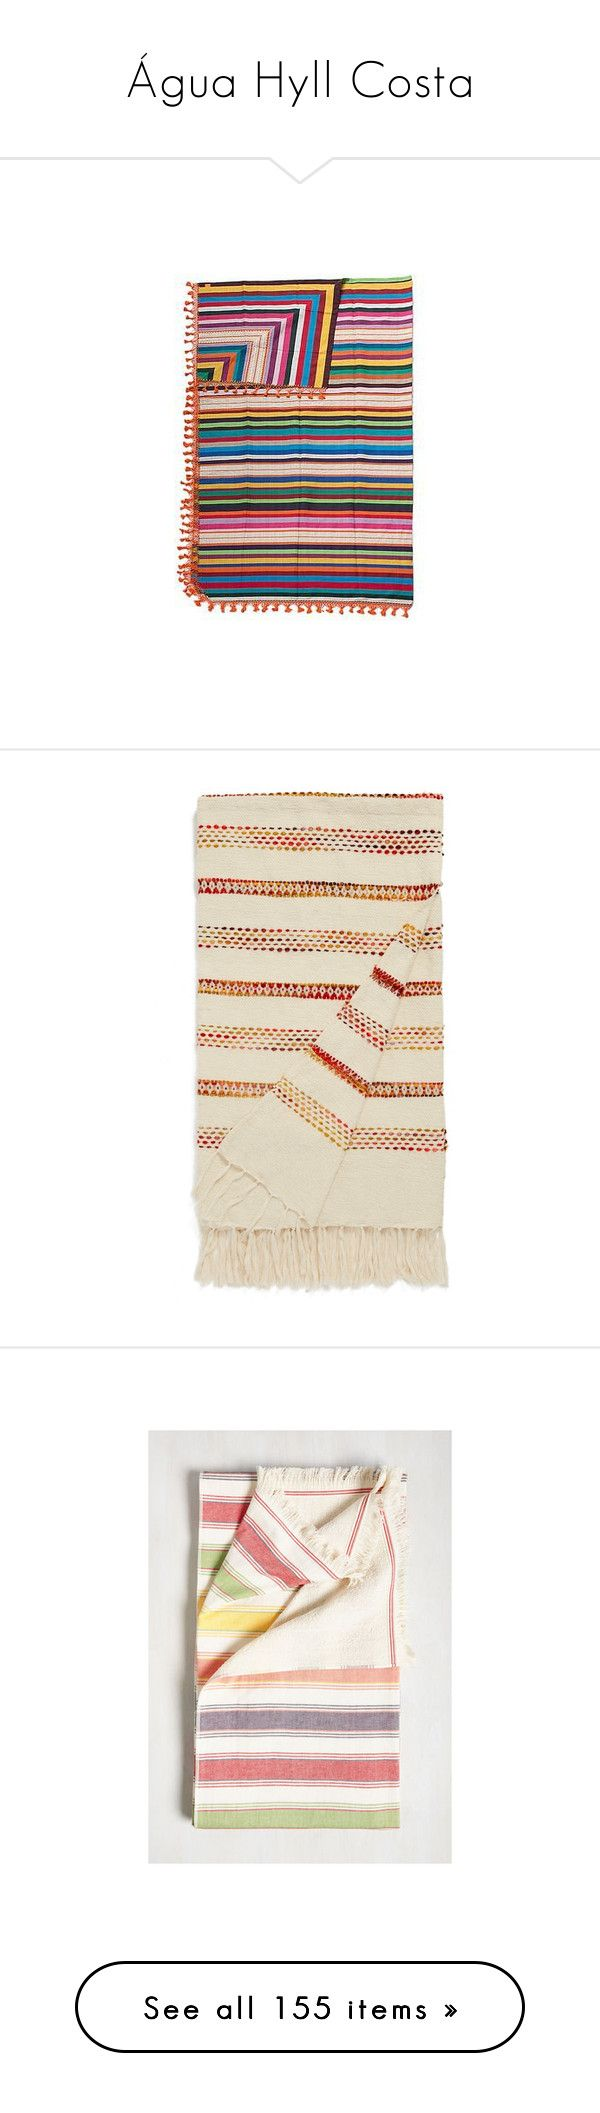 """""""Água Hyll Costa"""" by encelade ❤ liked on Polyvore featuring home, bed & bath, bedding, blankets, bedspreads and quilts, home decor, pillows & throws, striped throw blanket, king cotton blanket and king size blanket"""